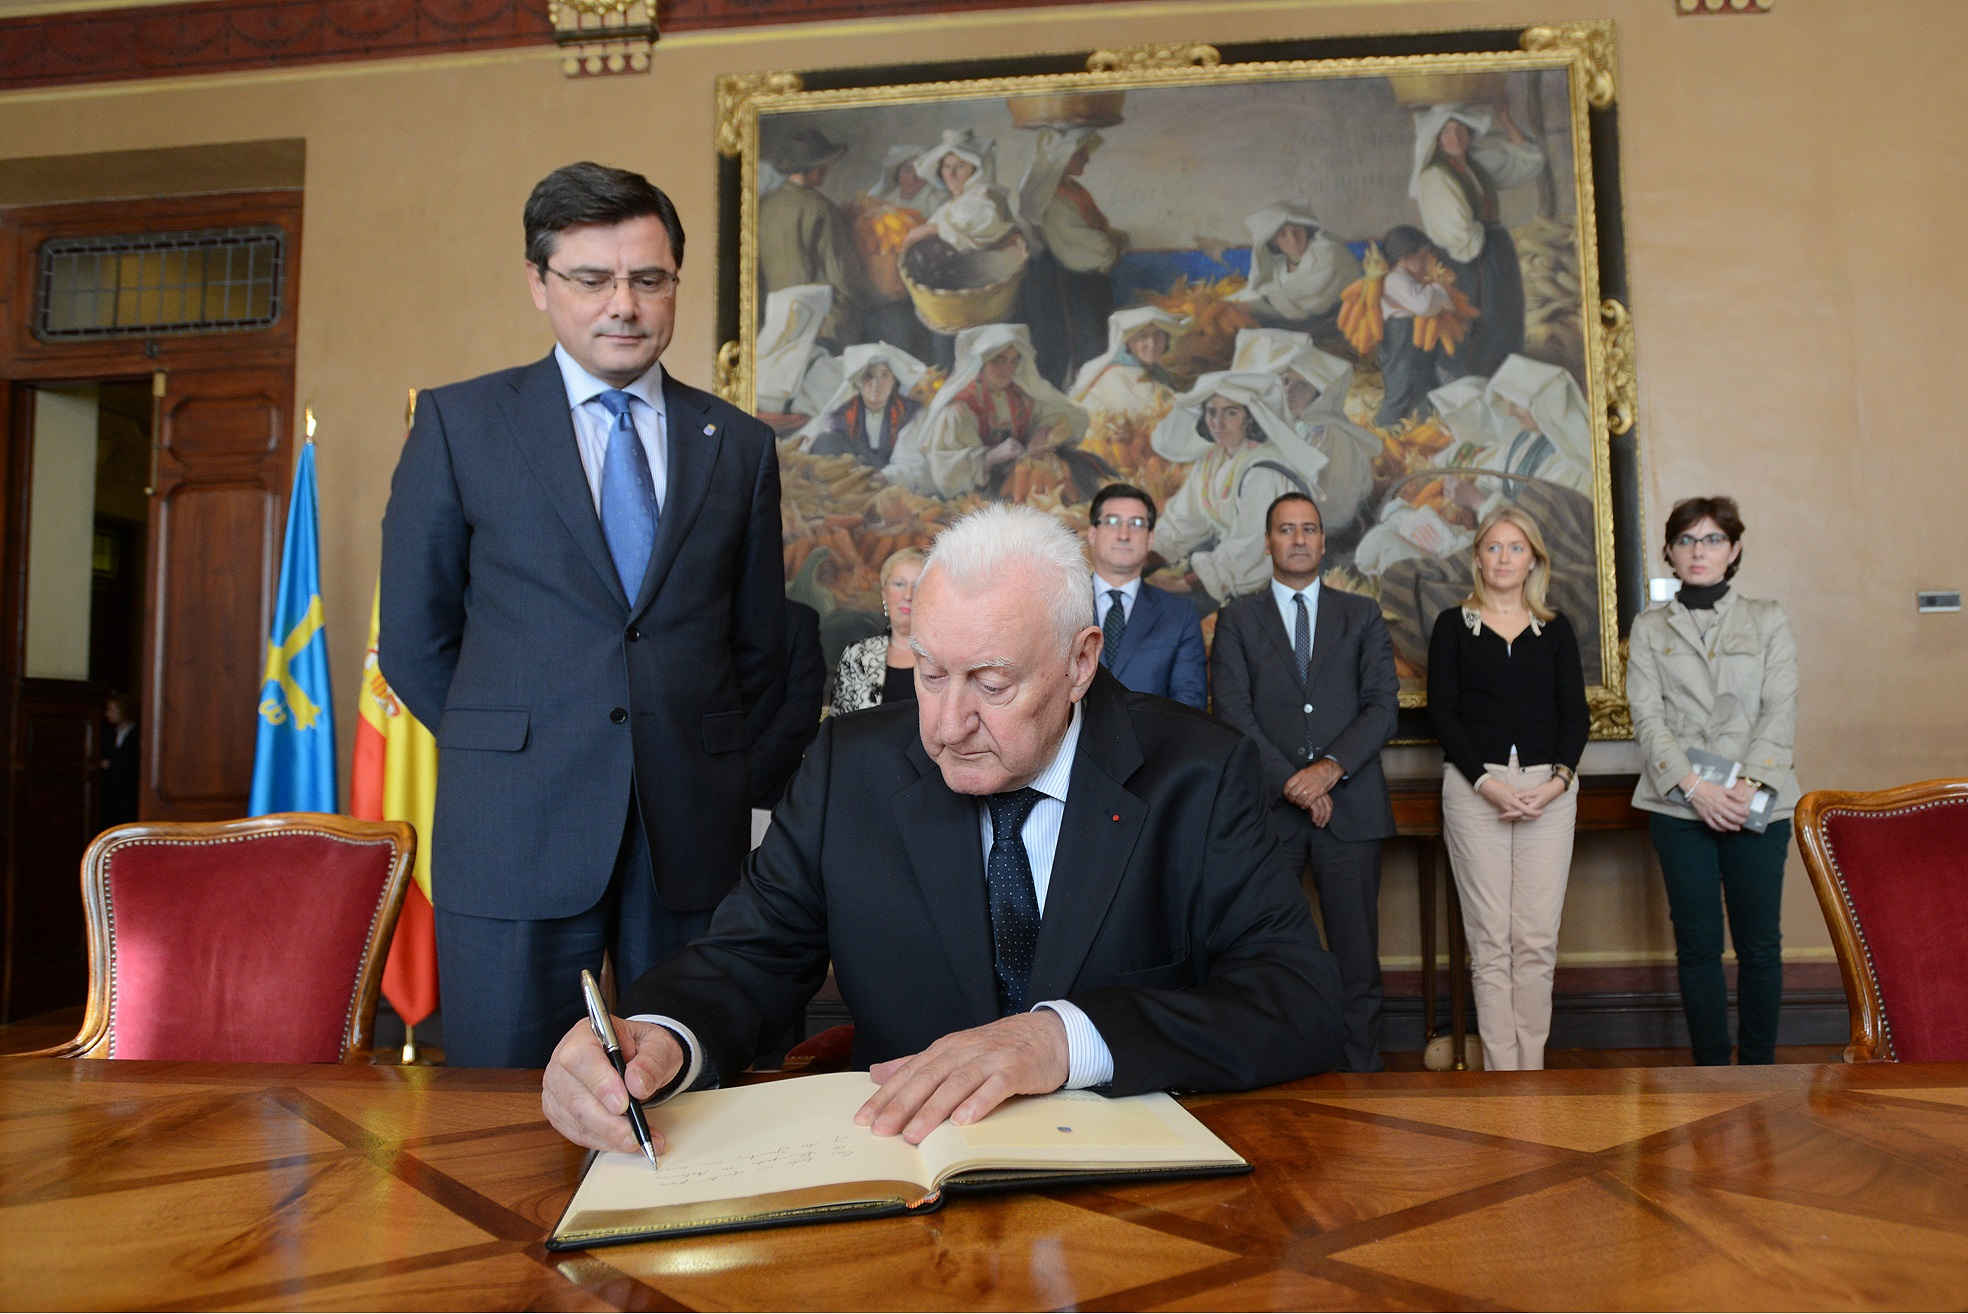 Joseph Pérez visiting the Regional Parliament of the Principality of Asturias